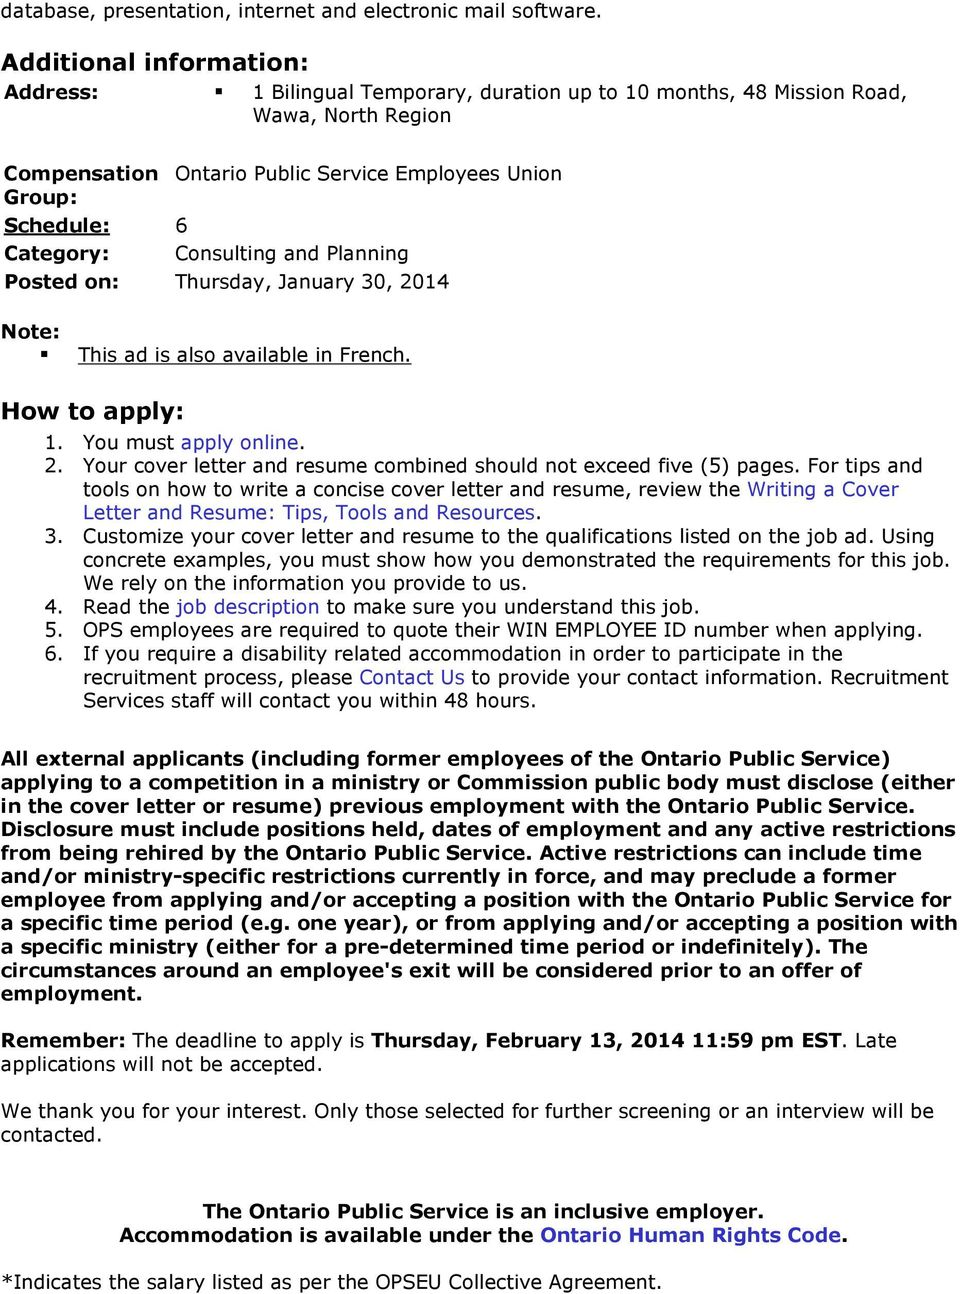 Consulting and Planning Posted on: Thursday, January 30, 2014 Note: This ad is also available in French. How to apply: 1. You must apply online. 2. Your cover letter and resume combined should not exceed five (5) pages.